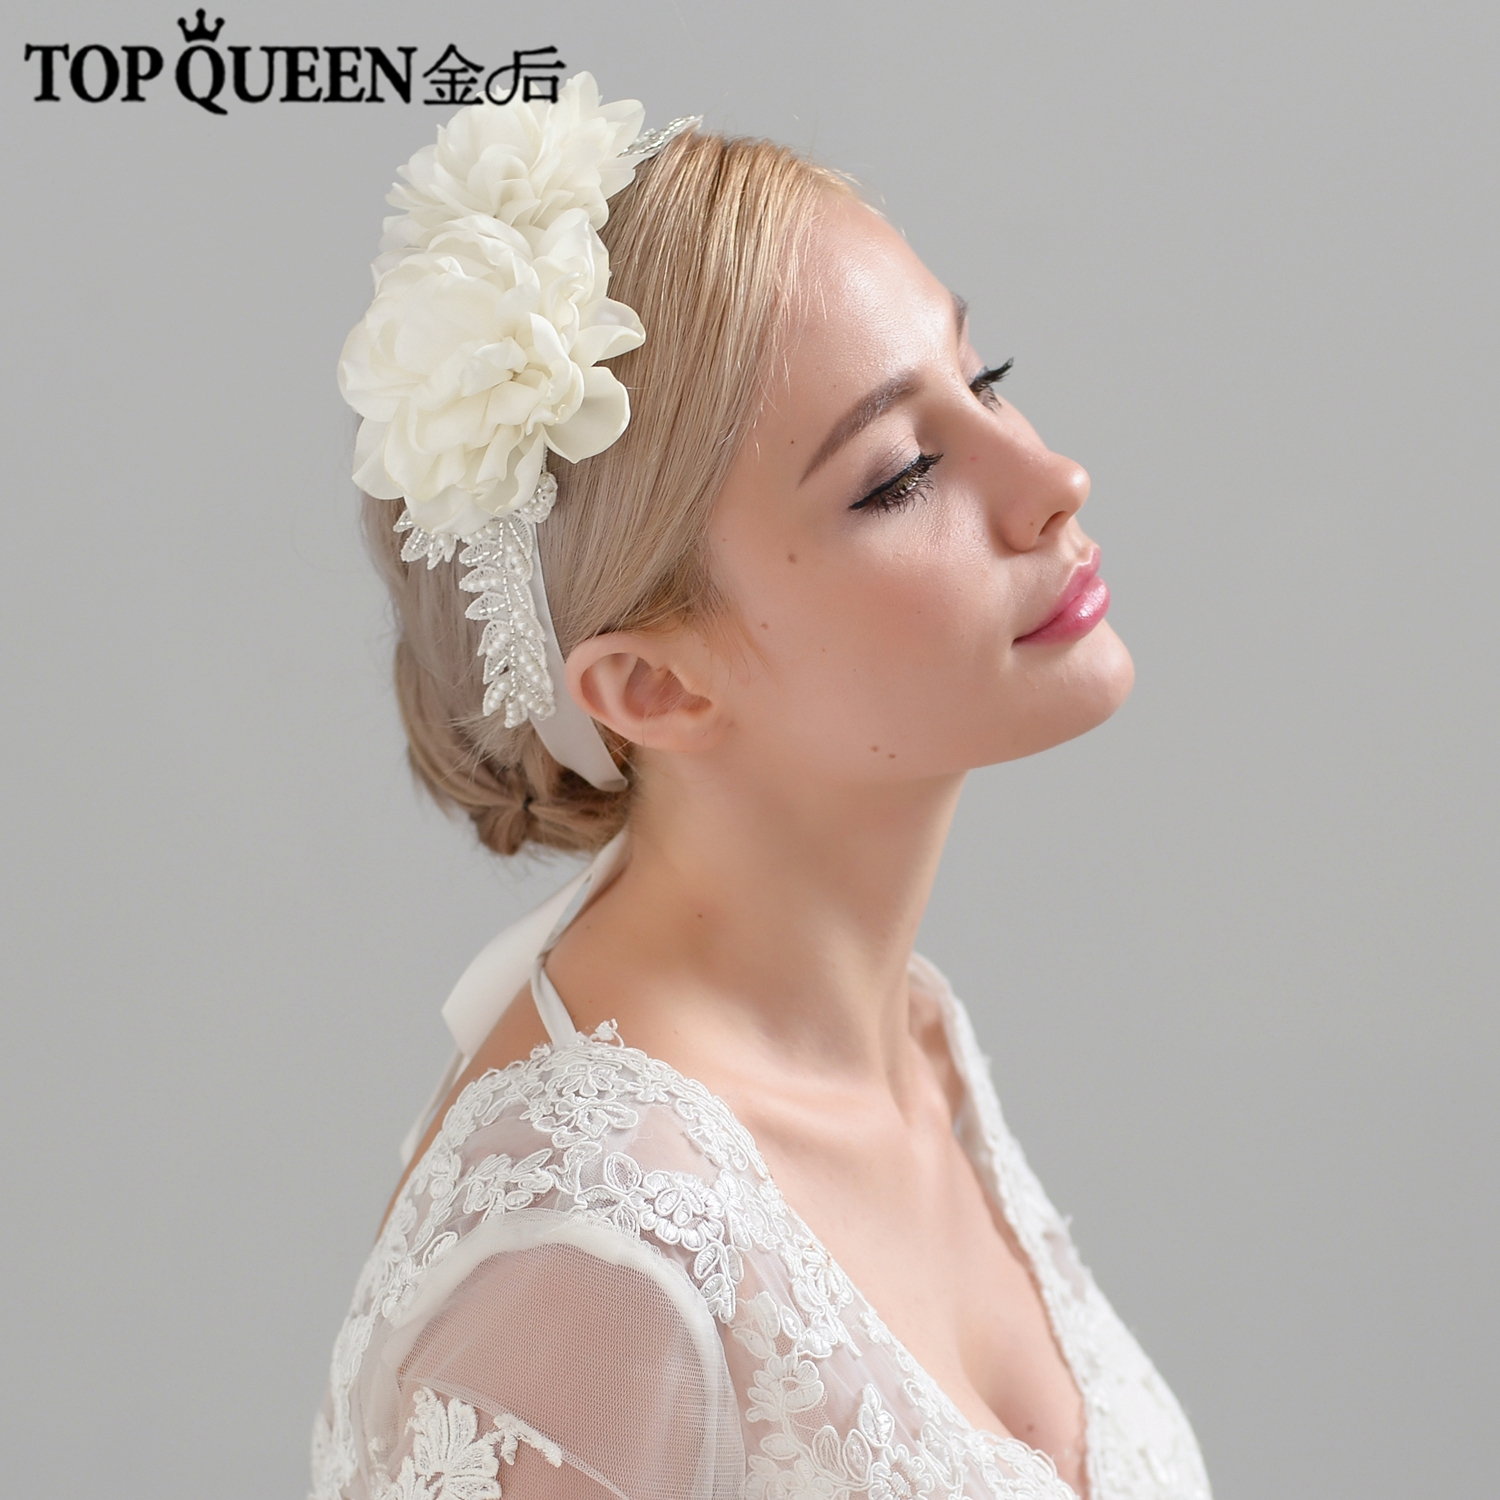 us $19.99 |topqueen h251 free shipping bridal headbands beaded wedding hair accessories organza flowers bridal headpieces fast shipping-in bridal